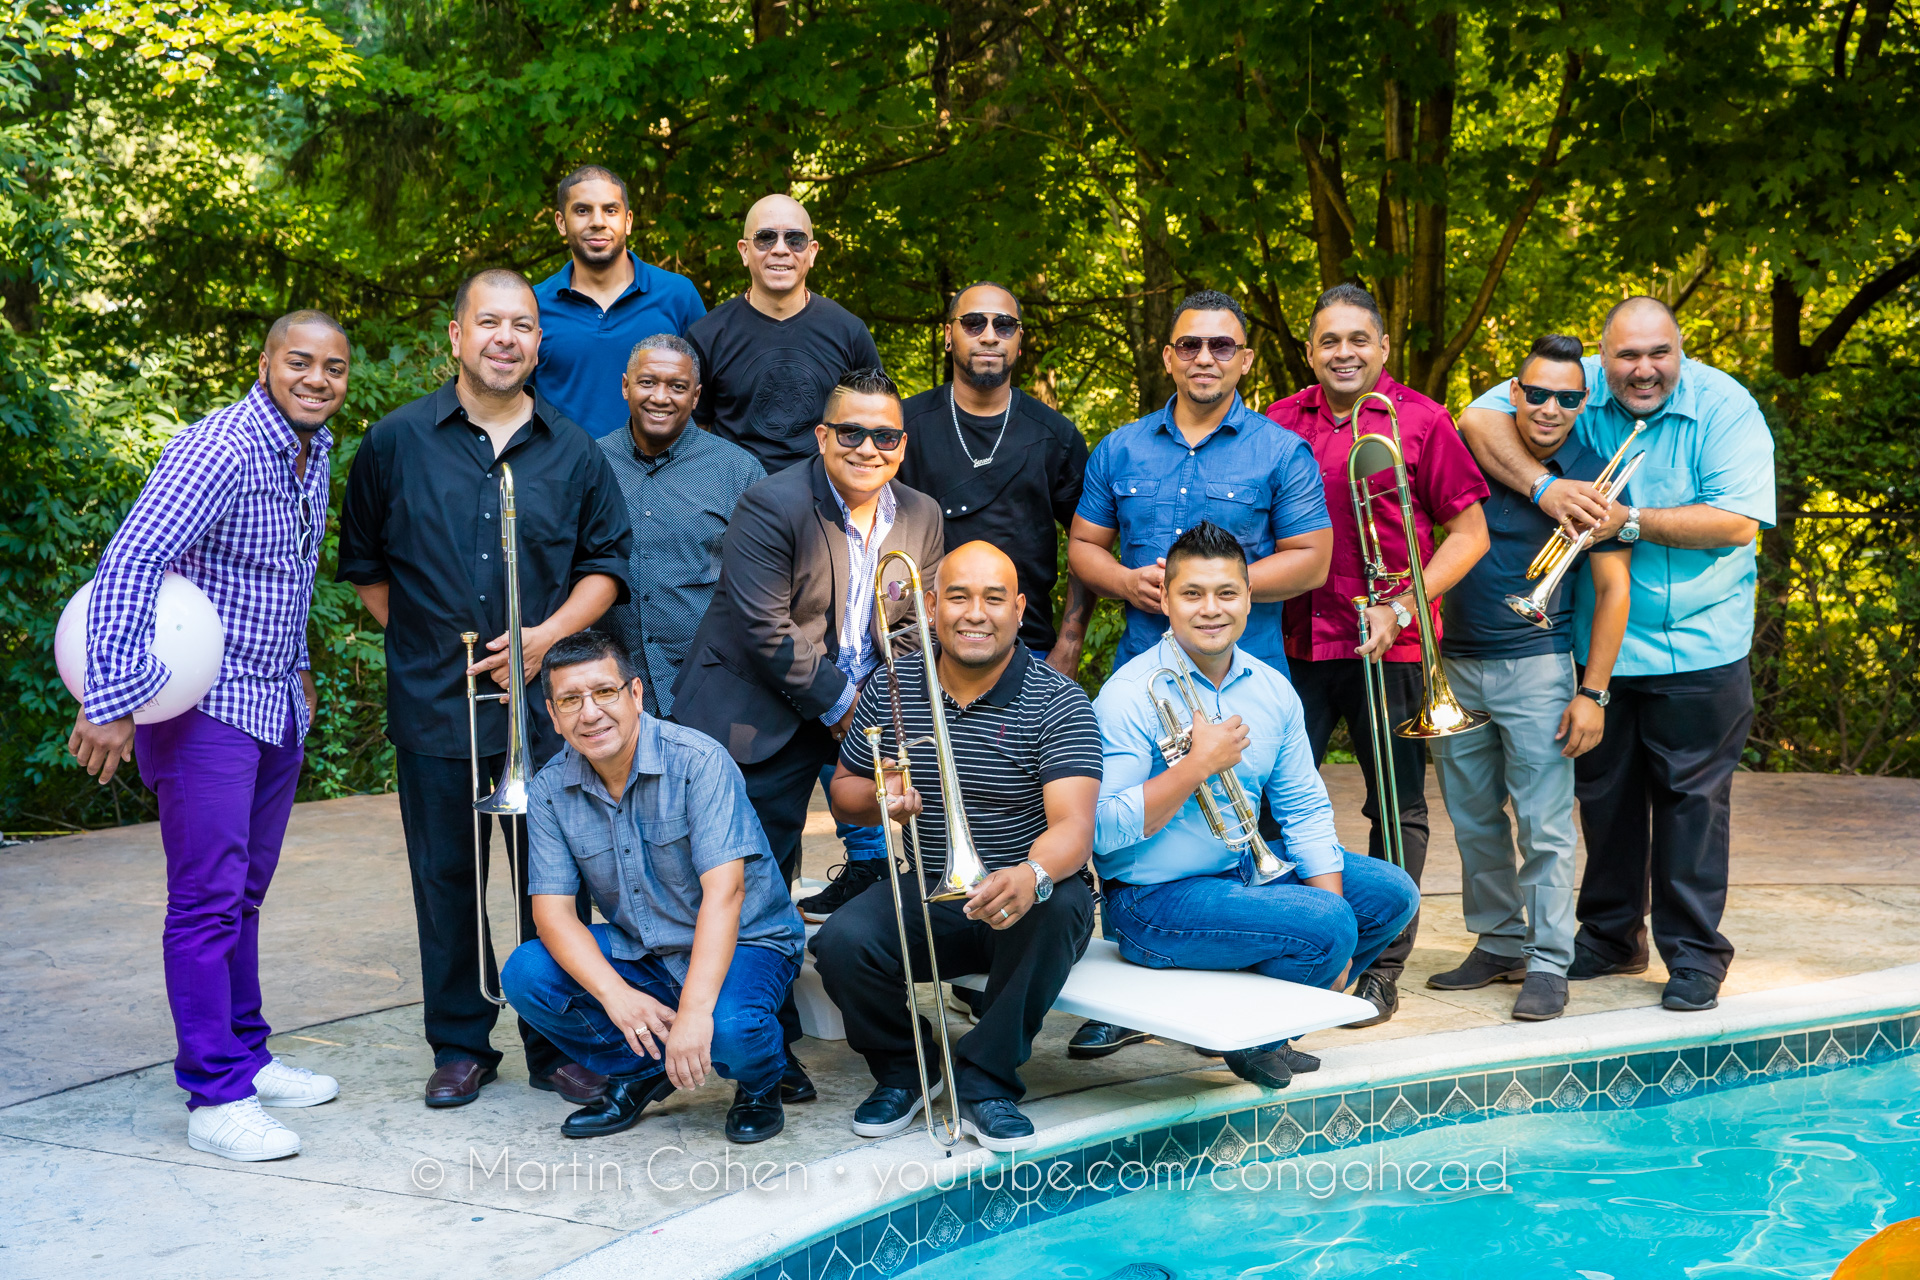 Orquesta La Ley salsa band performs at Congahead Studios